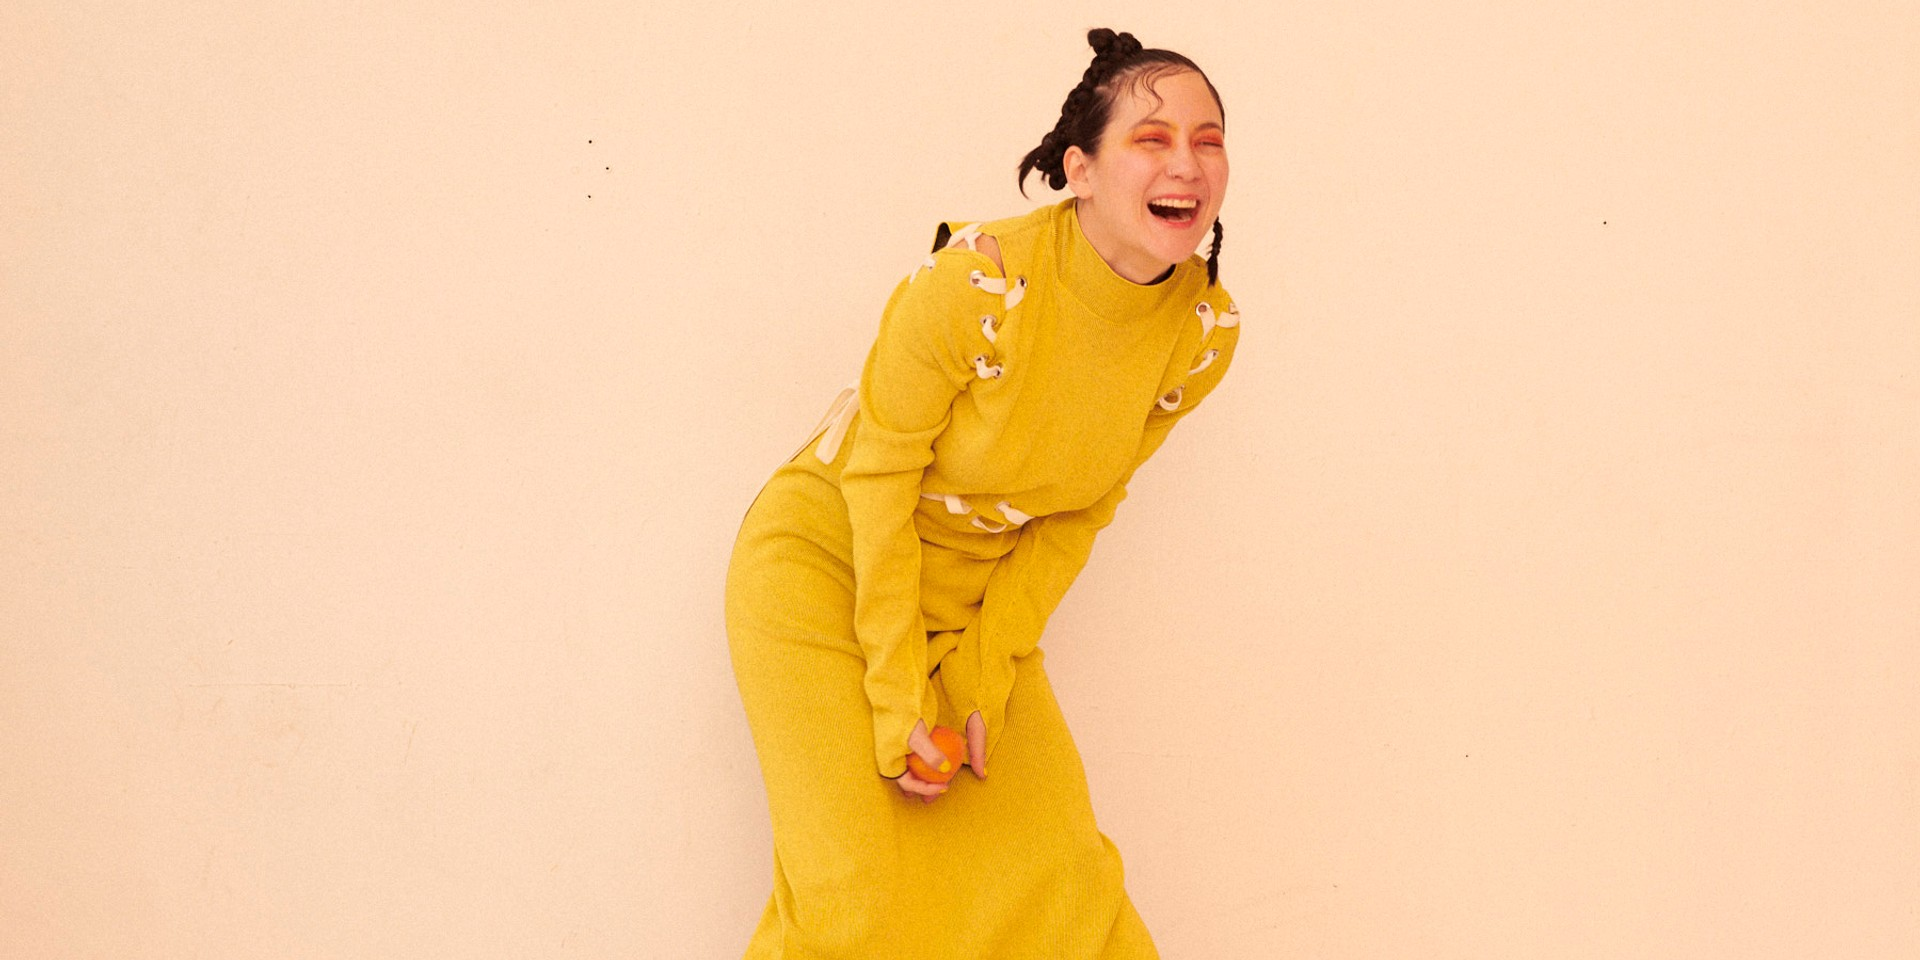 """Japanese Breakfast on her new album 'Jubilee': """"I'm giving myself permission to feel and explore joy for the first time"""""""